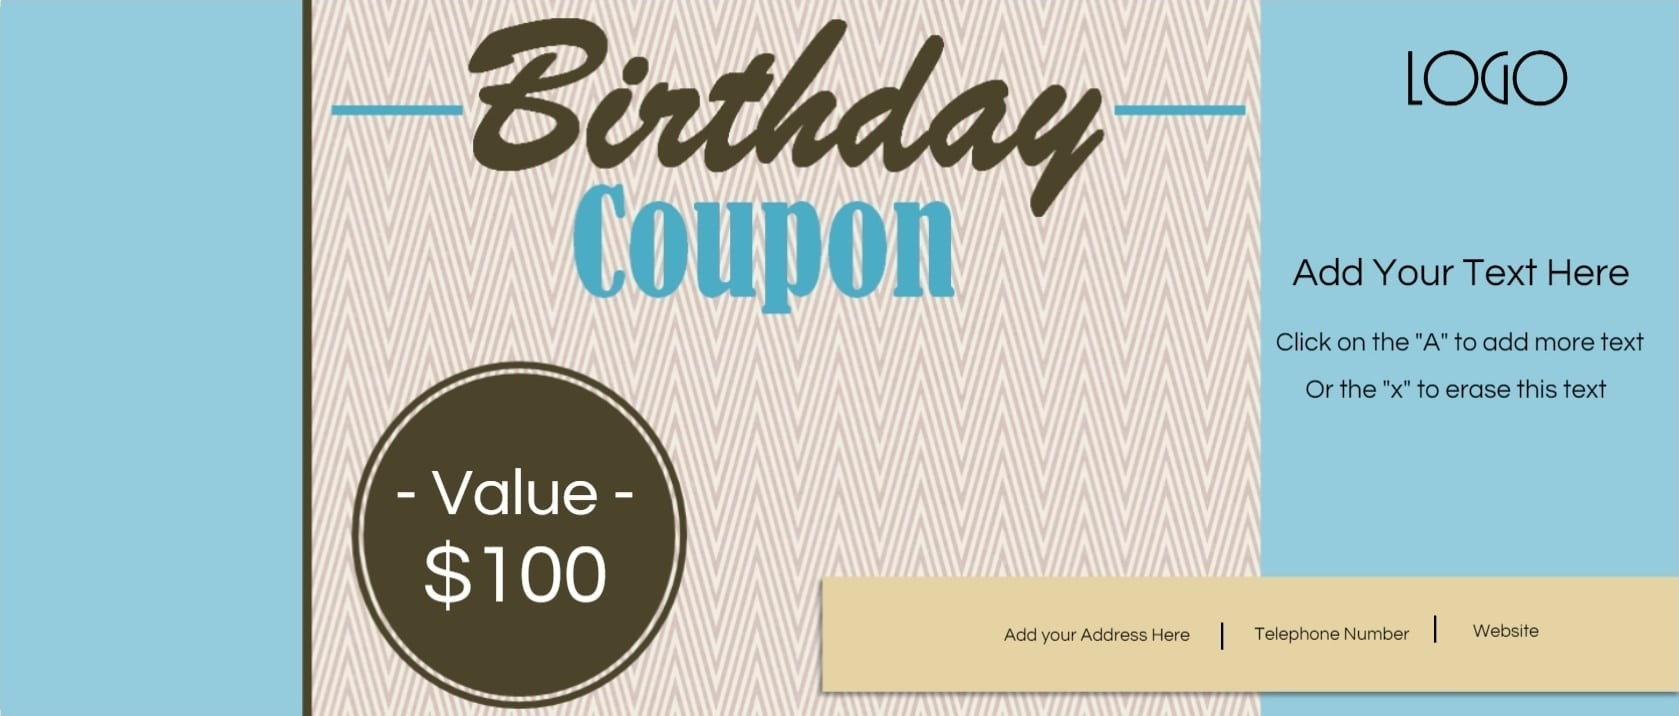 Free Custom Birthday Coupons - Customize Online & Print At Home pertaining to Birthday Coupon Template 30308